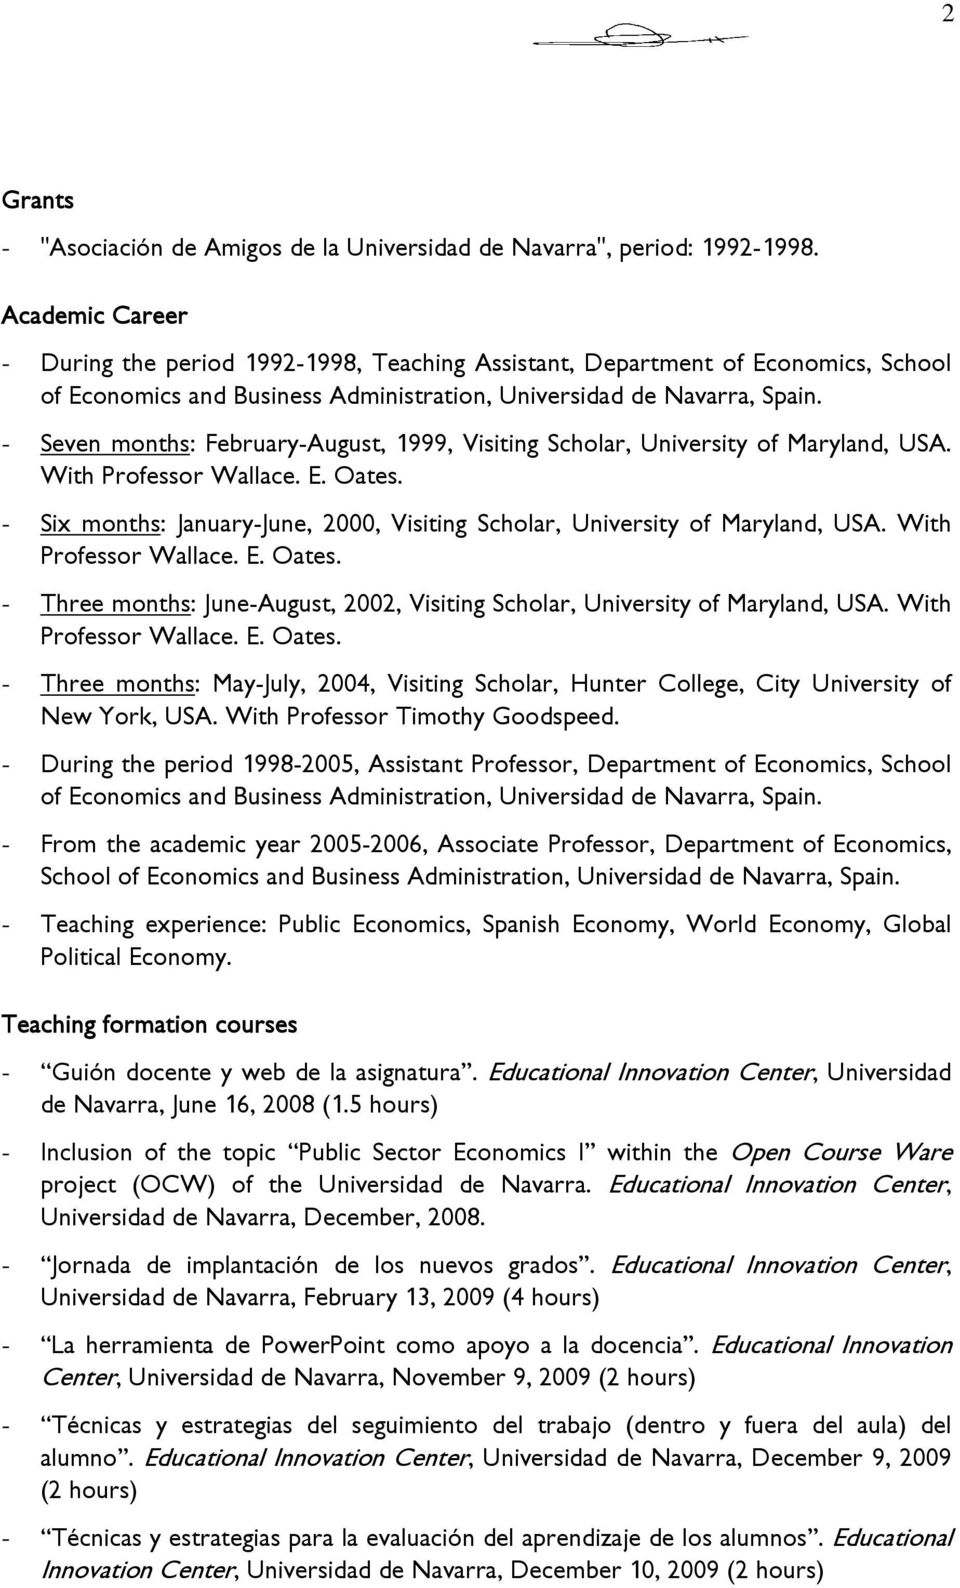 - Seven months: February-August, 1999, Visiting Scholar, University of Maryland, USA. With Professor Wallace. E. Oates. - Six months: January-June, 2000, Visiting Scholar, University of Maryland, USA.